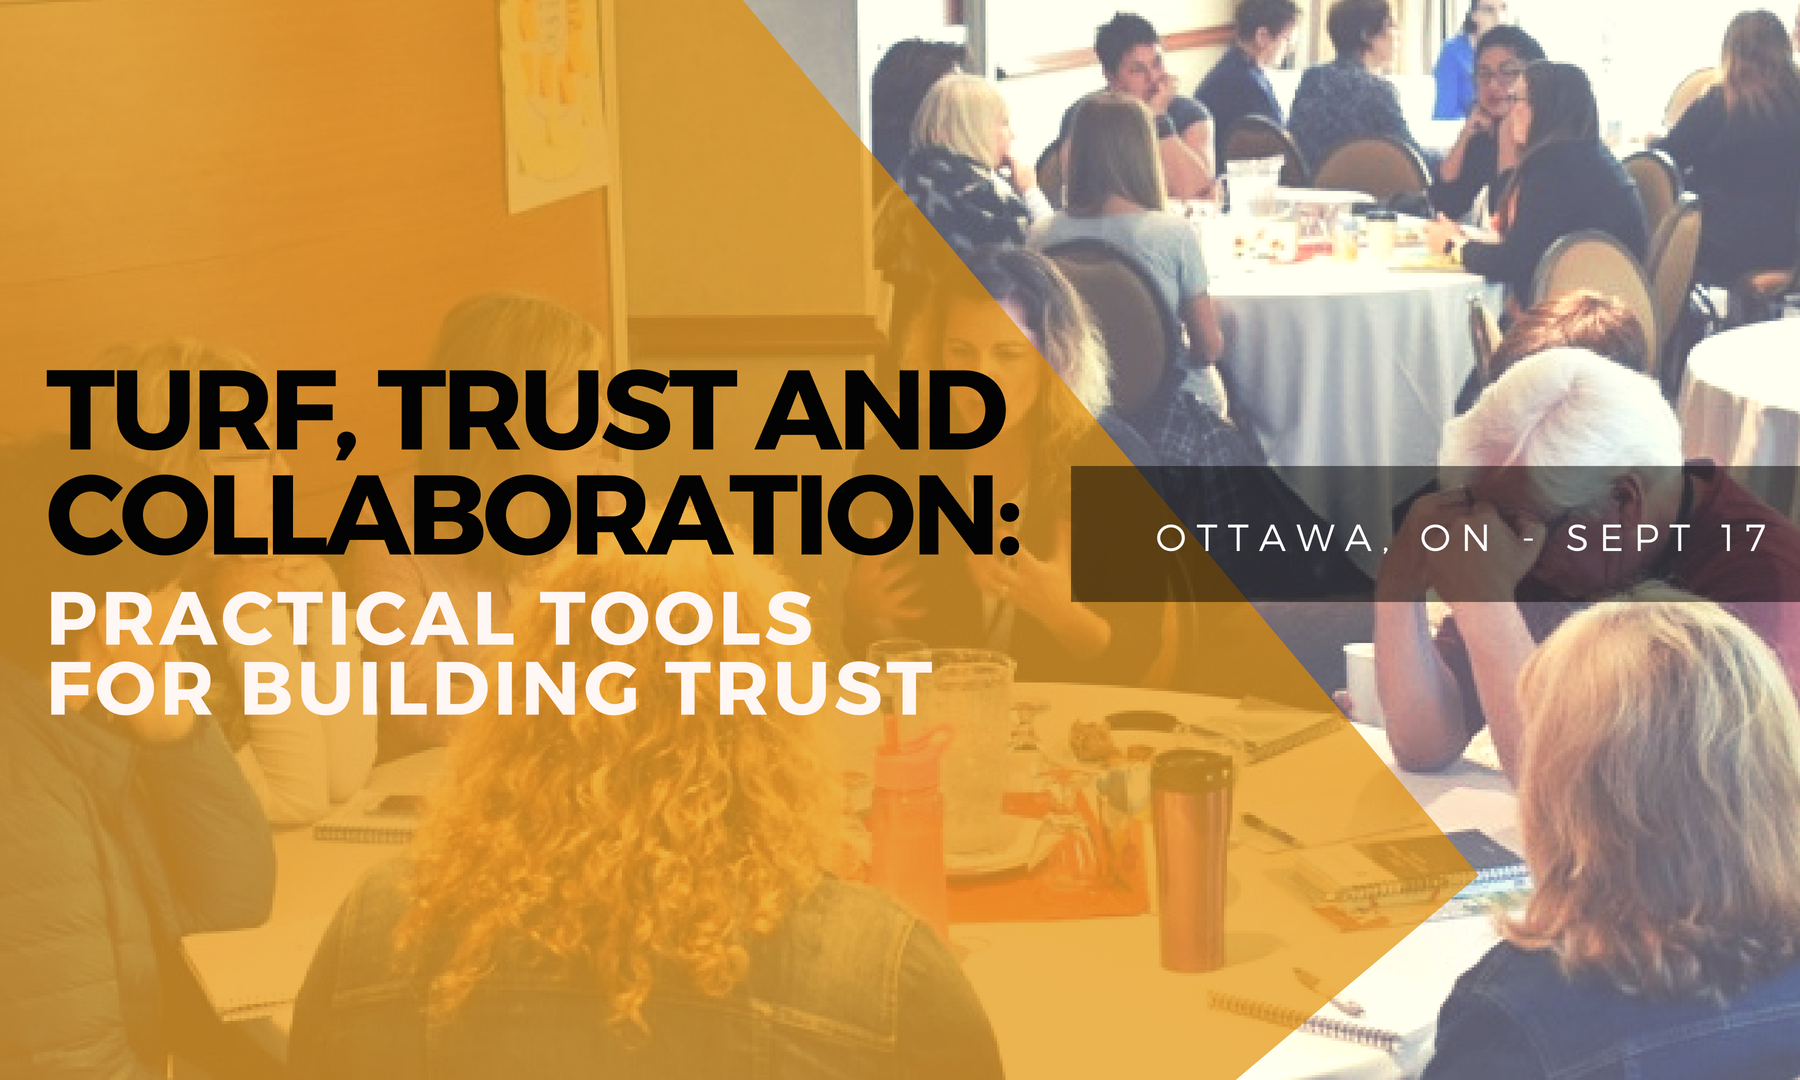 Turf, Trust, and Collaboration